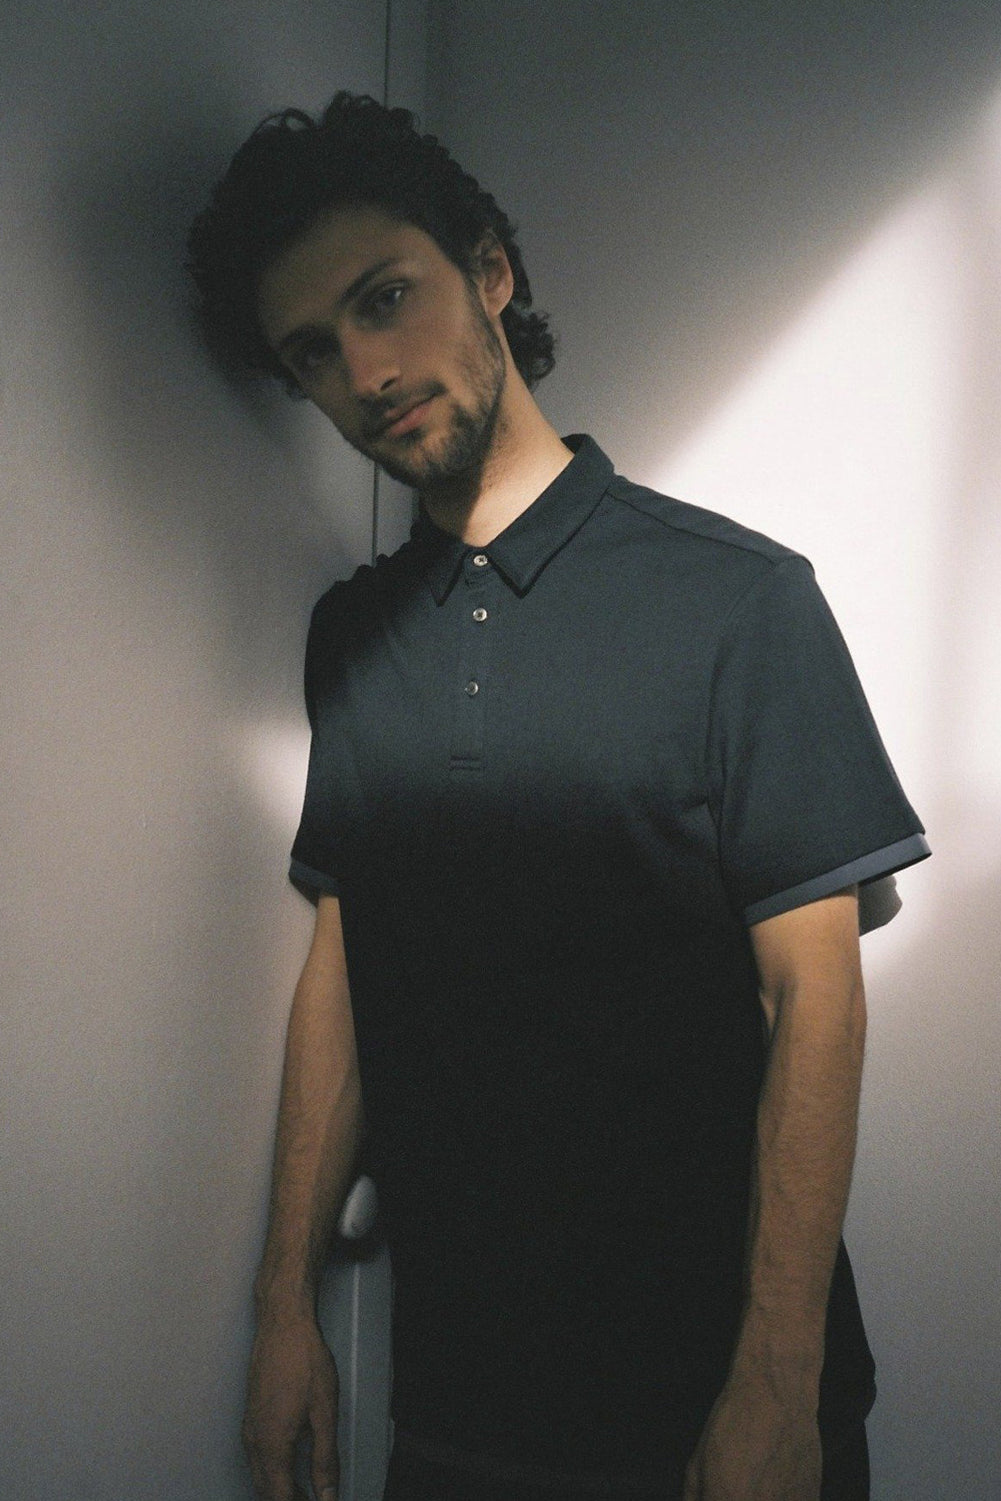 Model wearing Men Contrast Polo Shirt, made with Organic Cotton in Black (Front view)